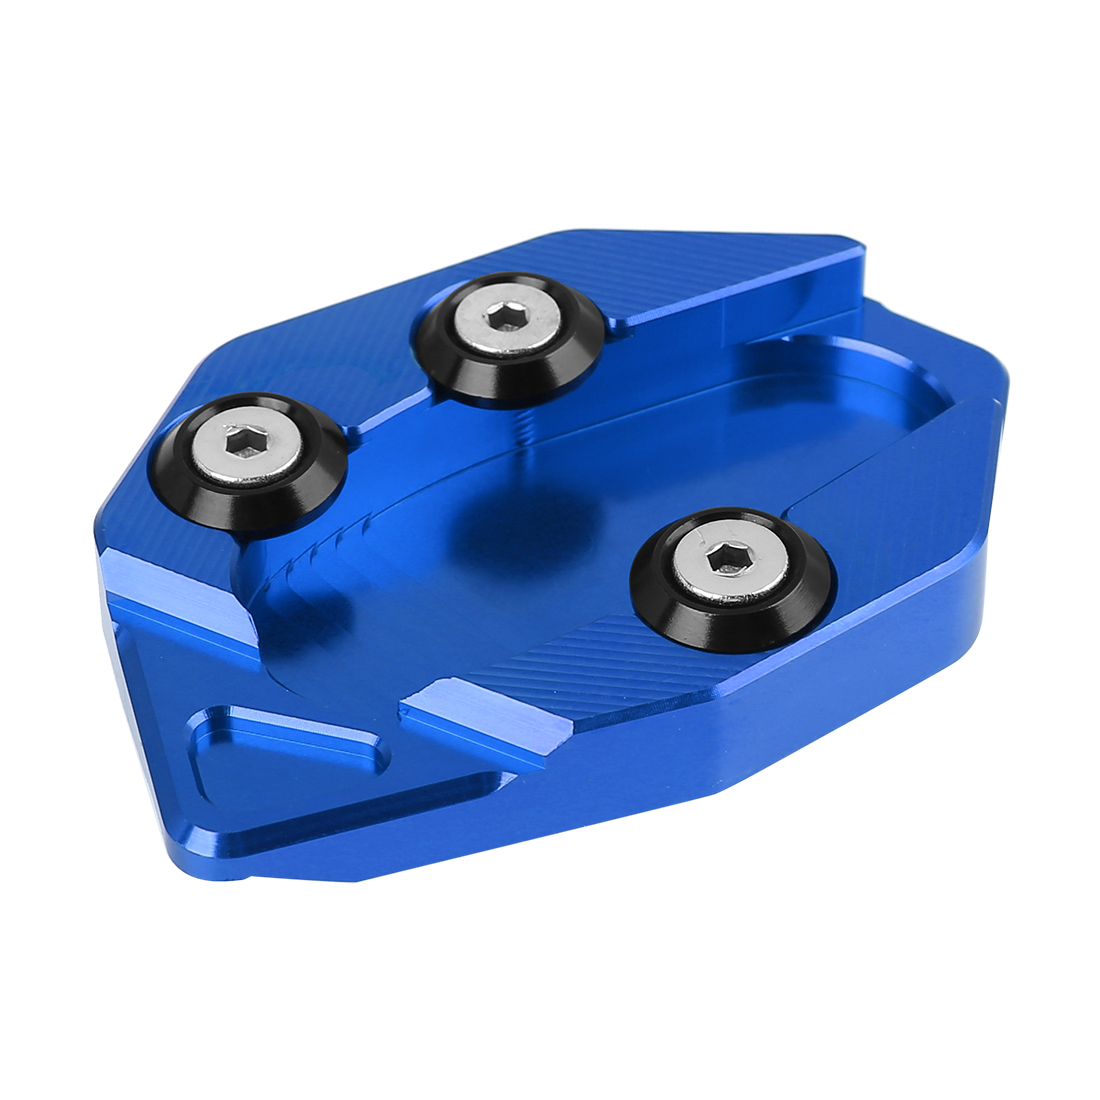 Blue Motorcycle Kickstand Pad Extension Side Stand Plate for YAMAX 530 12-16